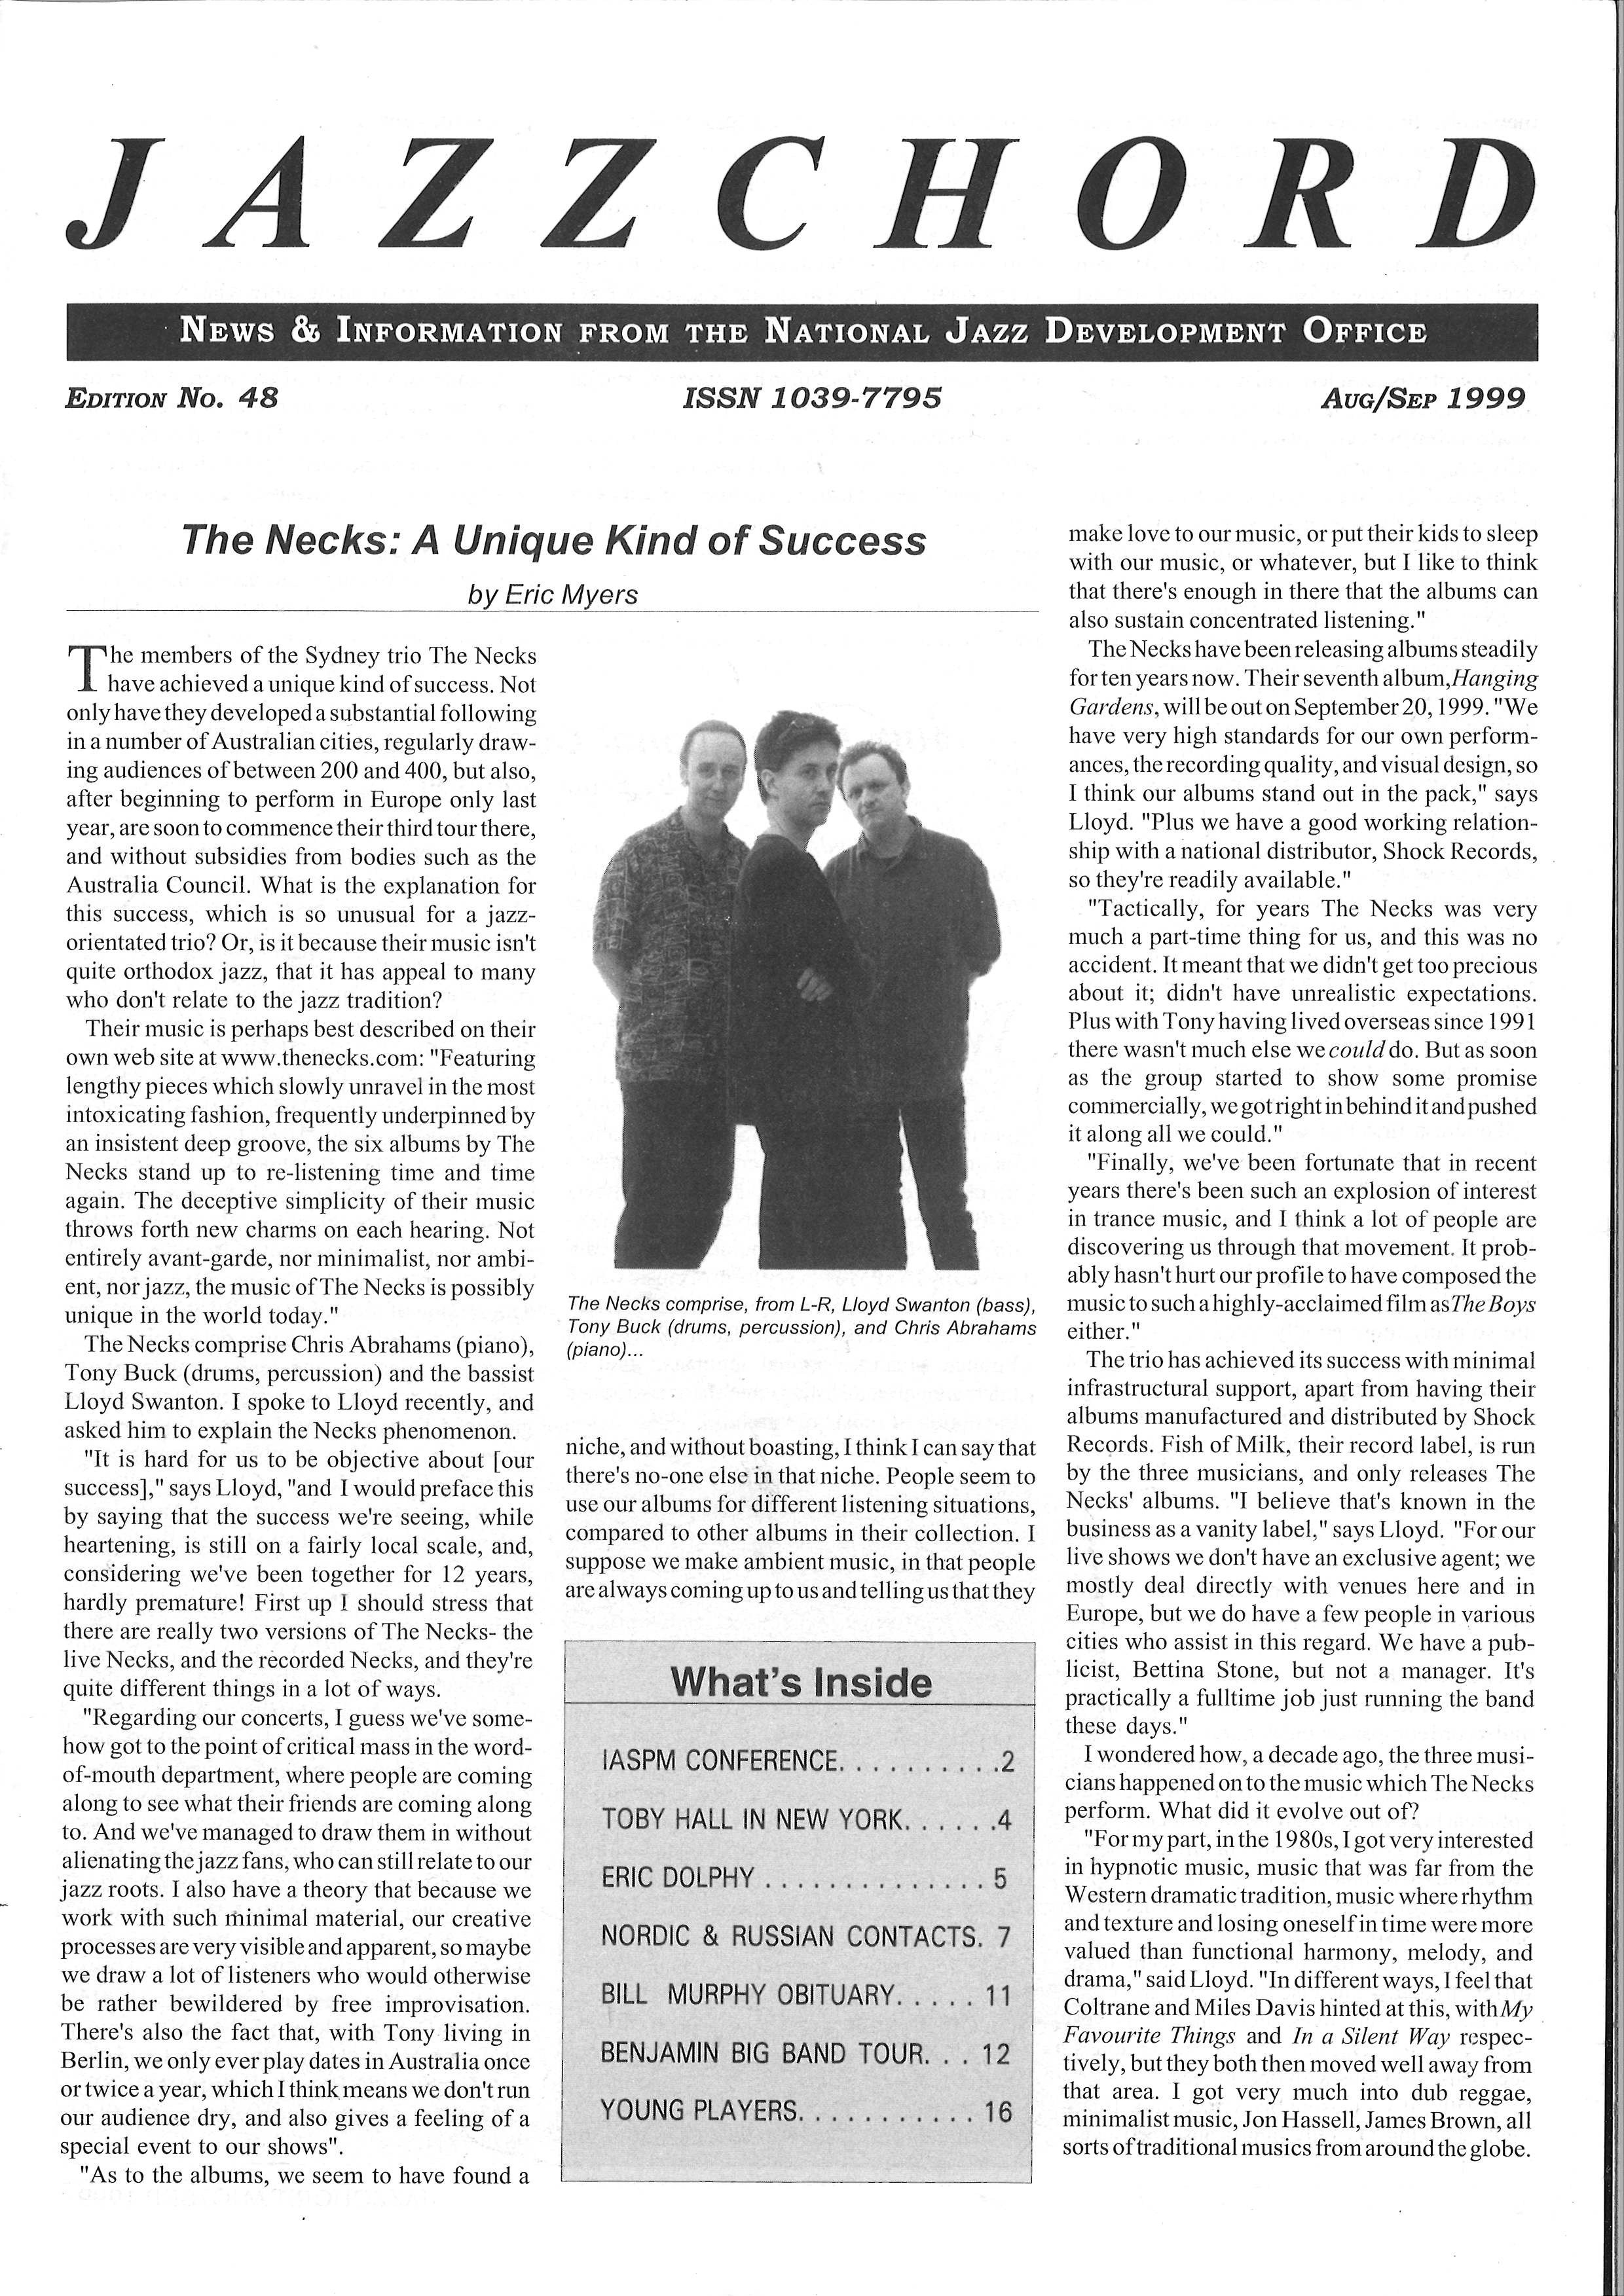 JazzChord48AugSep99FrontCover.jpg